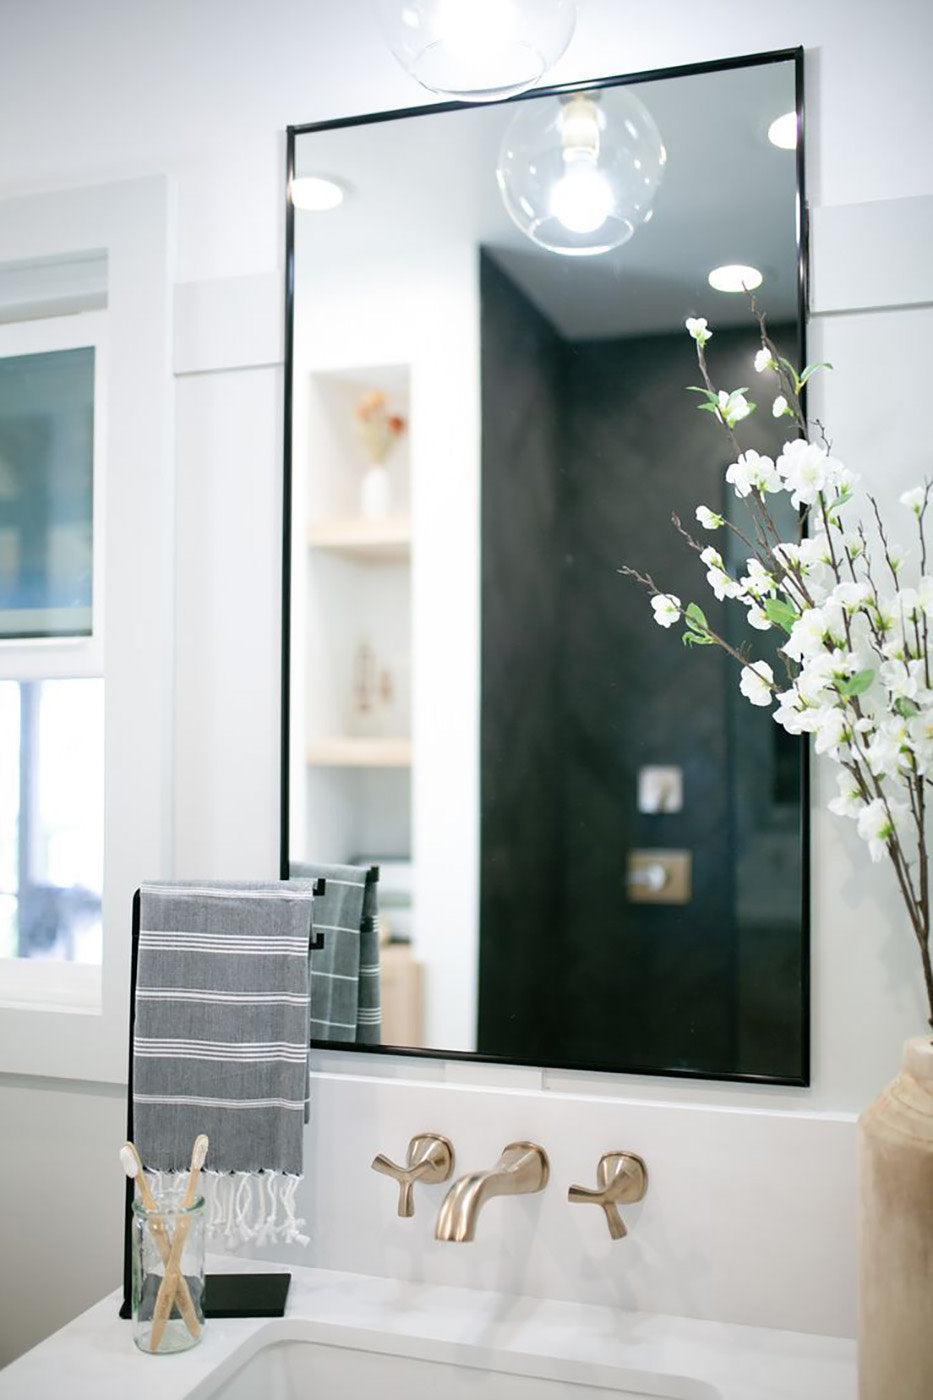 You'd never guess this luxe bathroom was once dark and dated. Go inside the bathroom remodel before and after now!